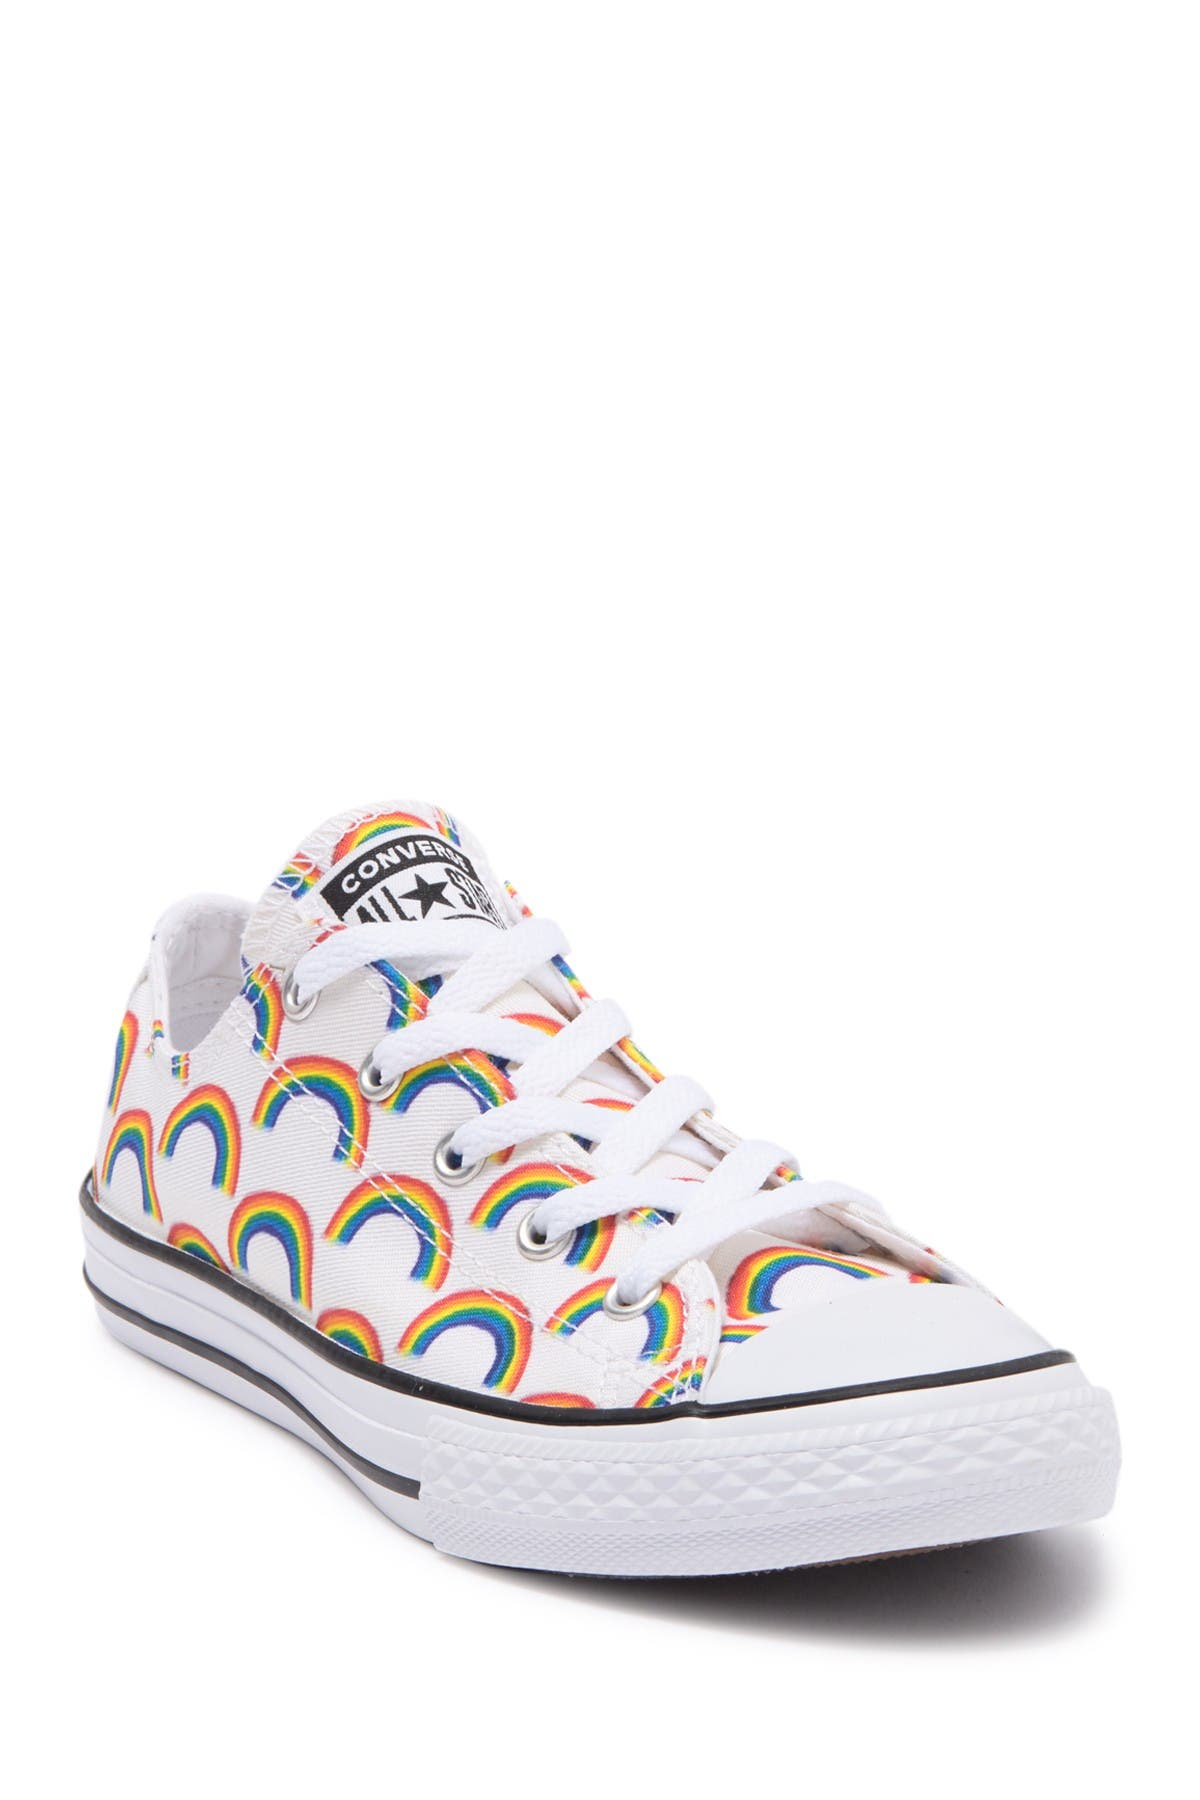 Image of Converse Chuck Taylor All Star Oxford Rainbow Sneaker